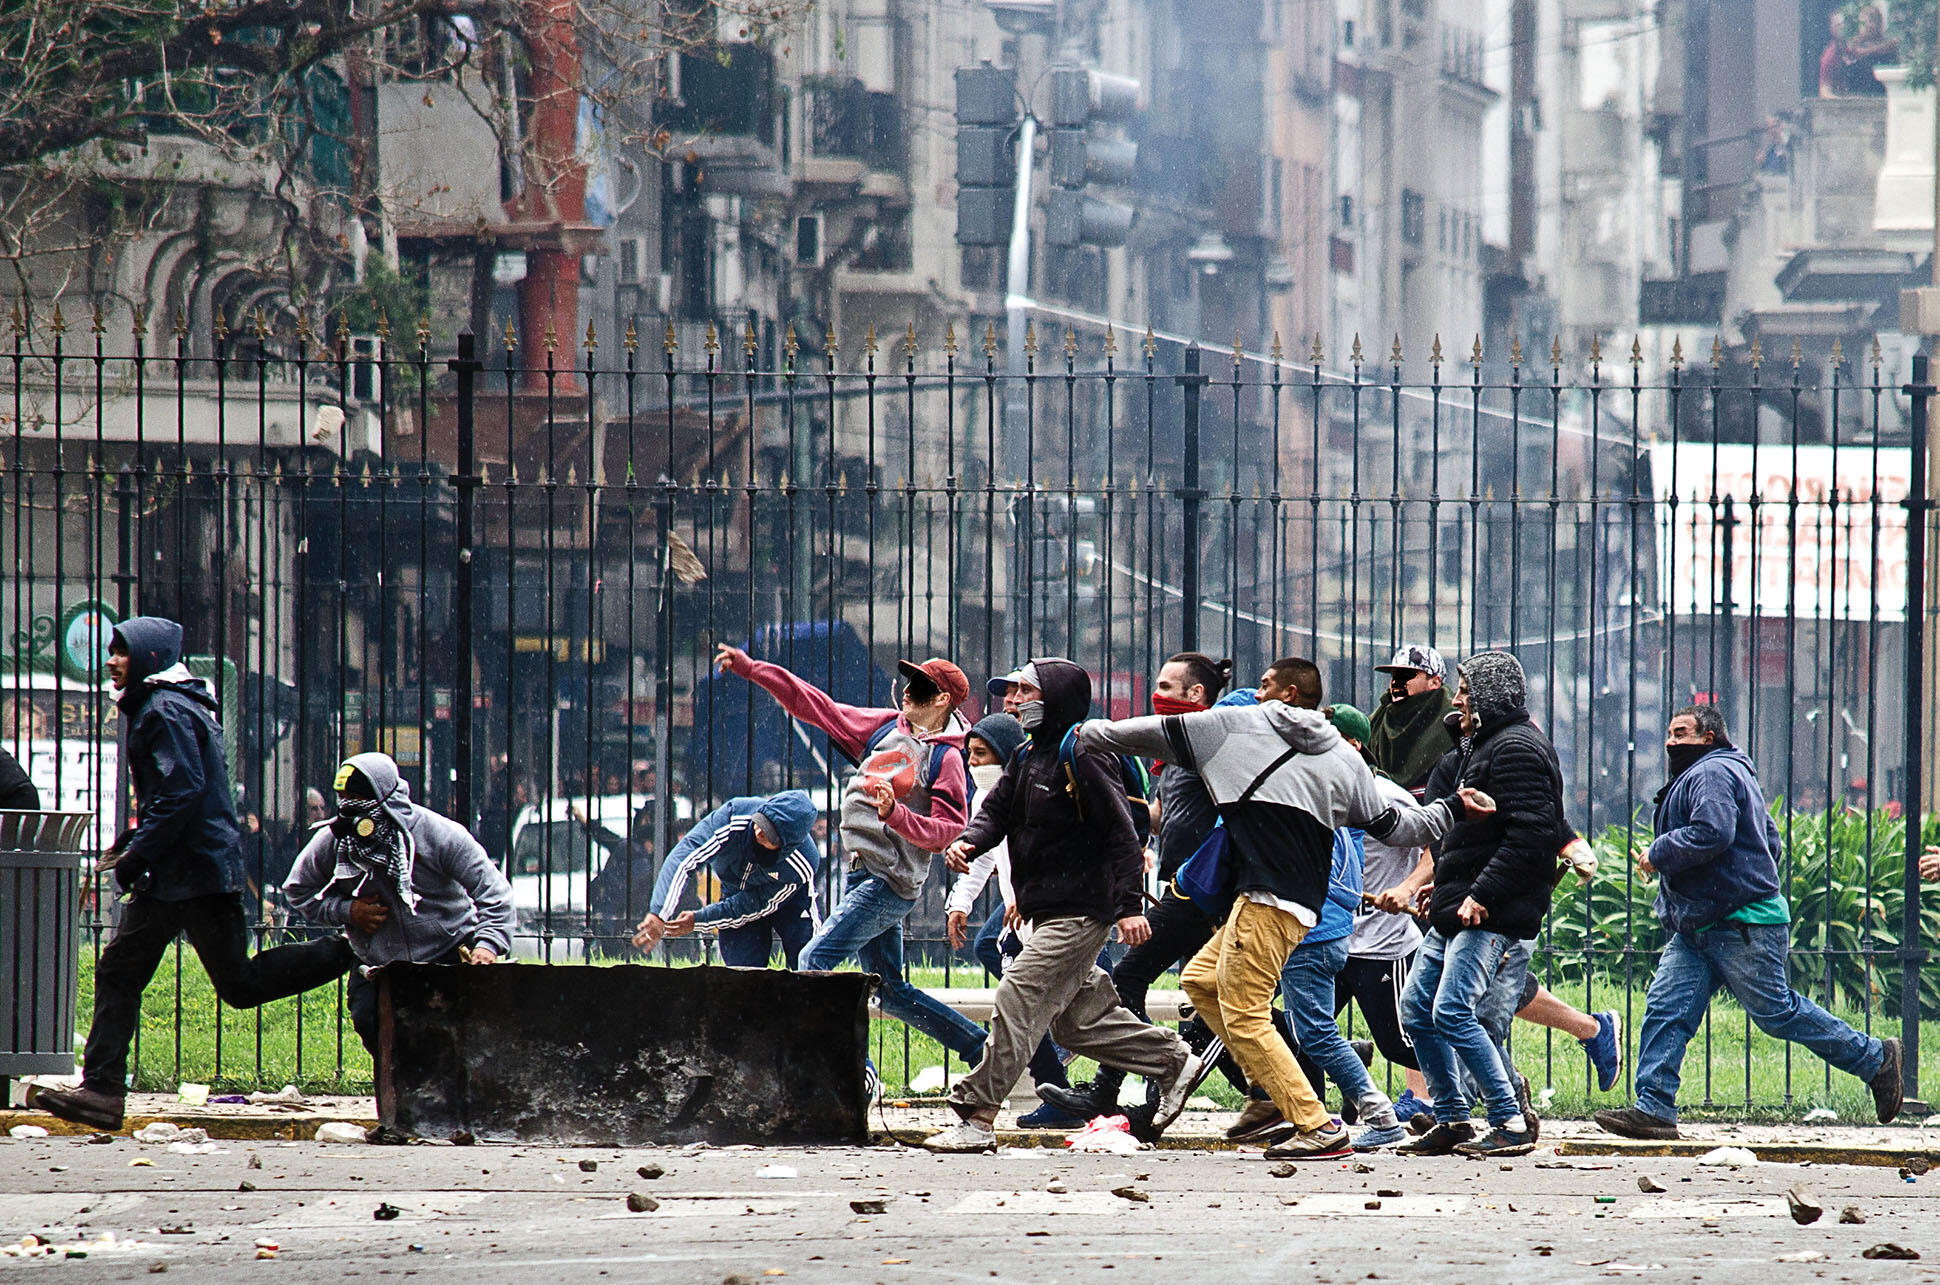 Protestors throw rocks during a protest against the IMF in downtown Buenos Aires, October 2018. (Photo by Santiago Sito.)